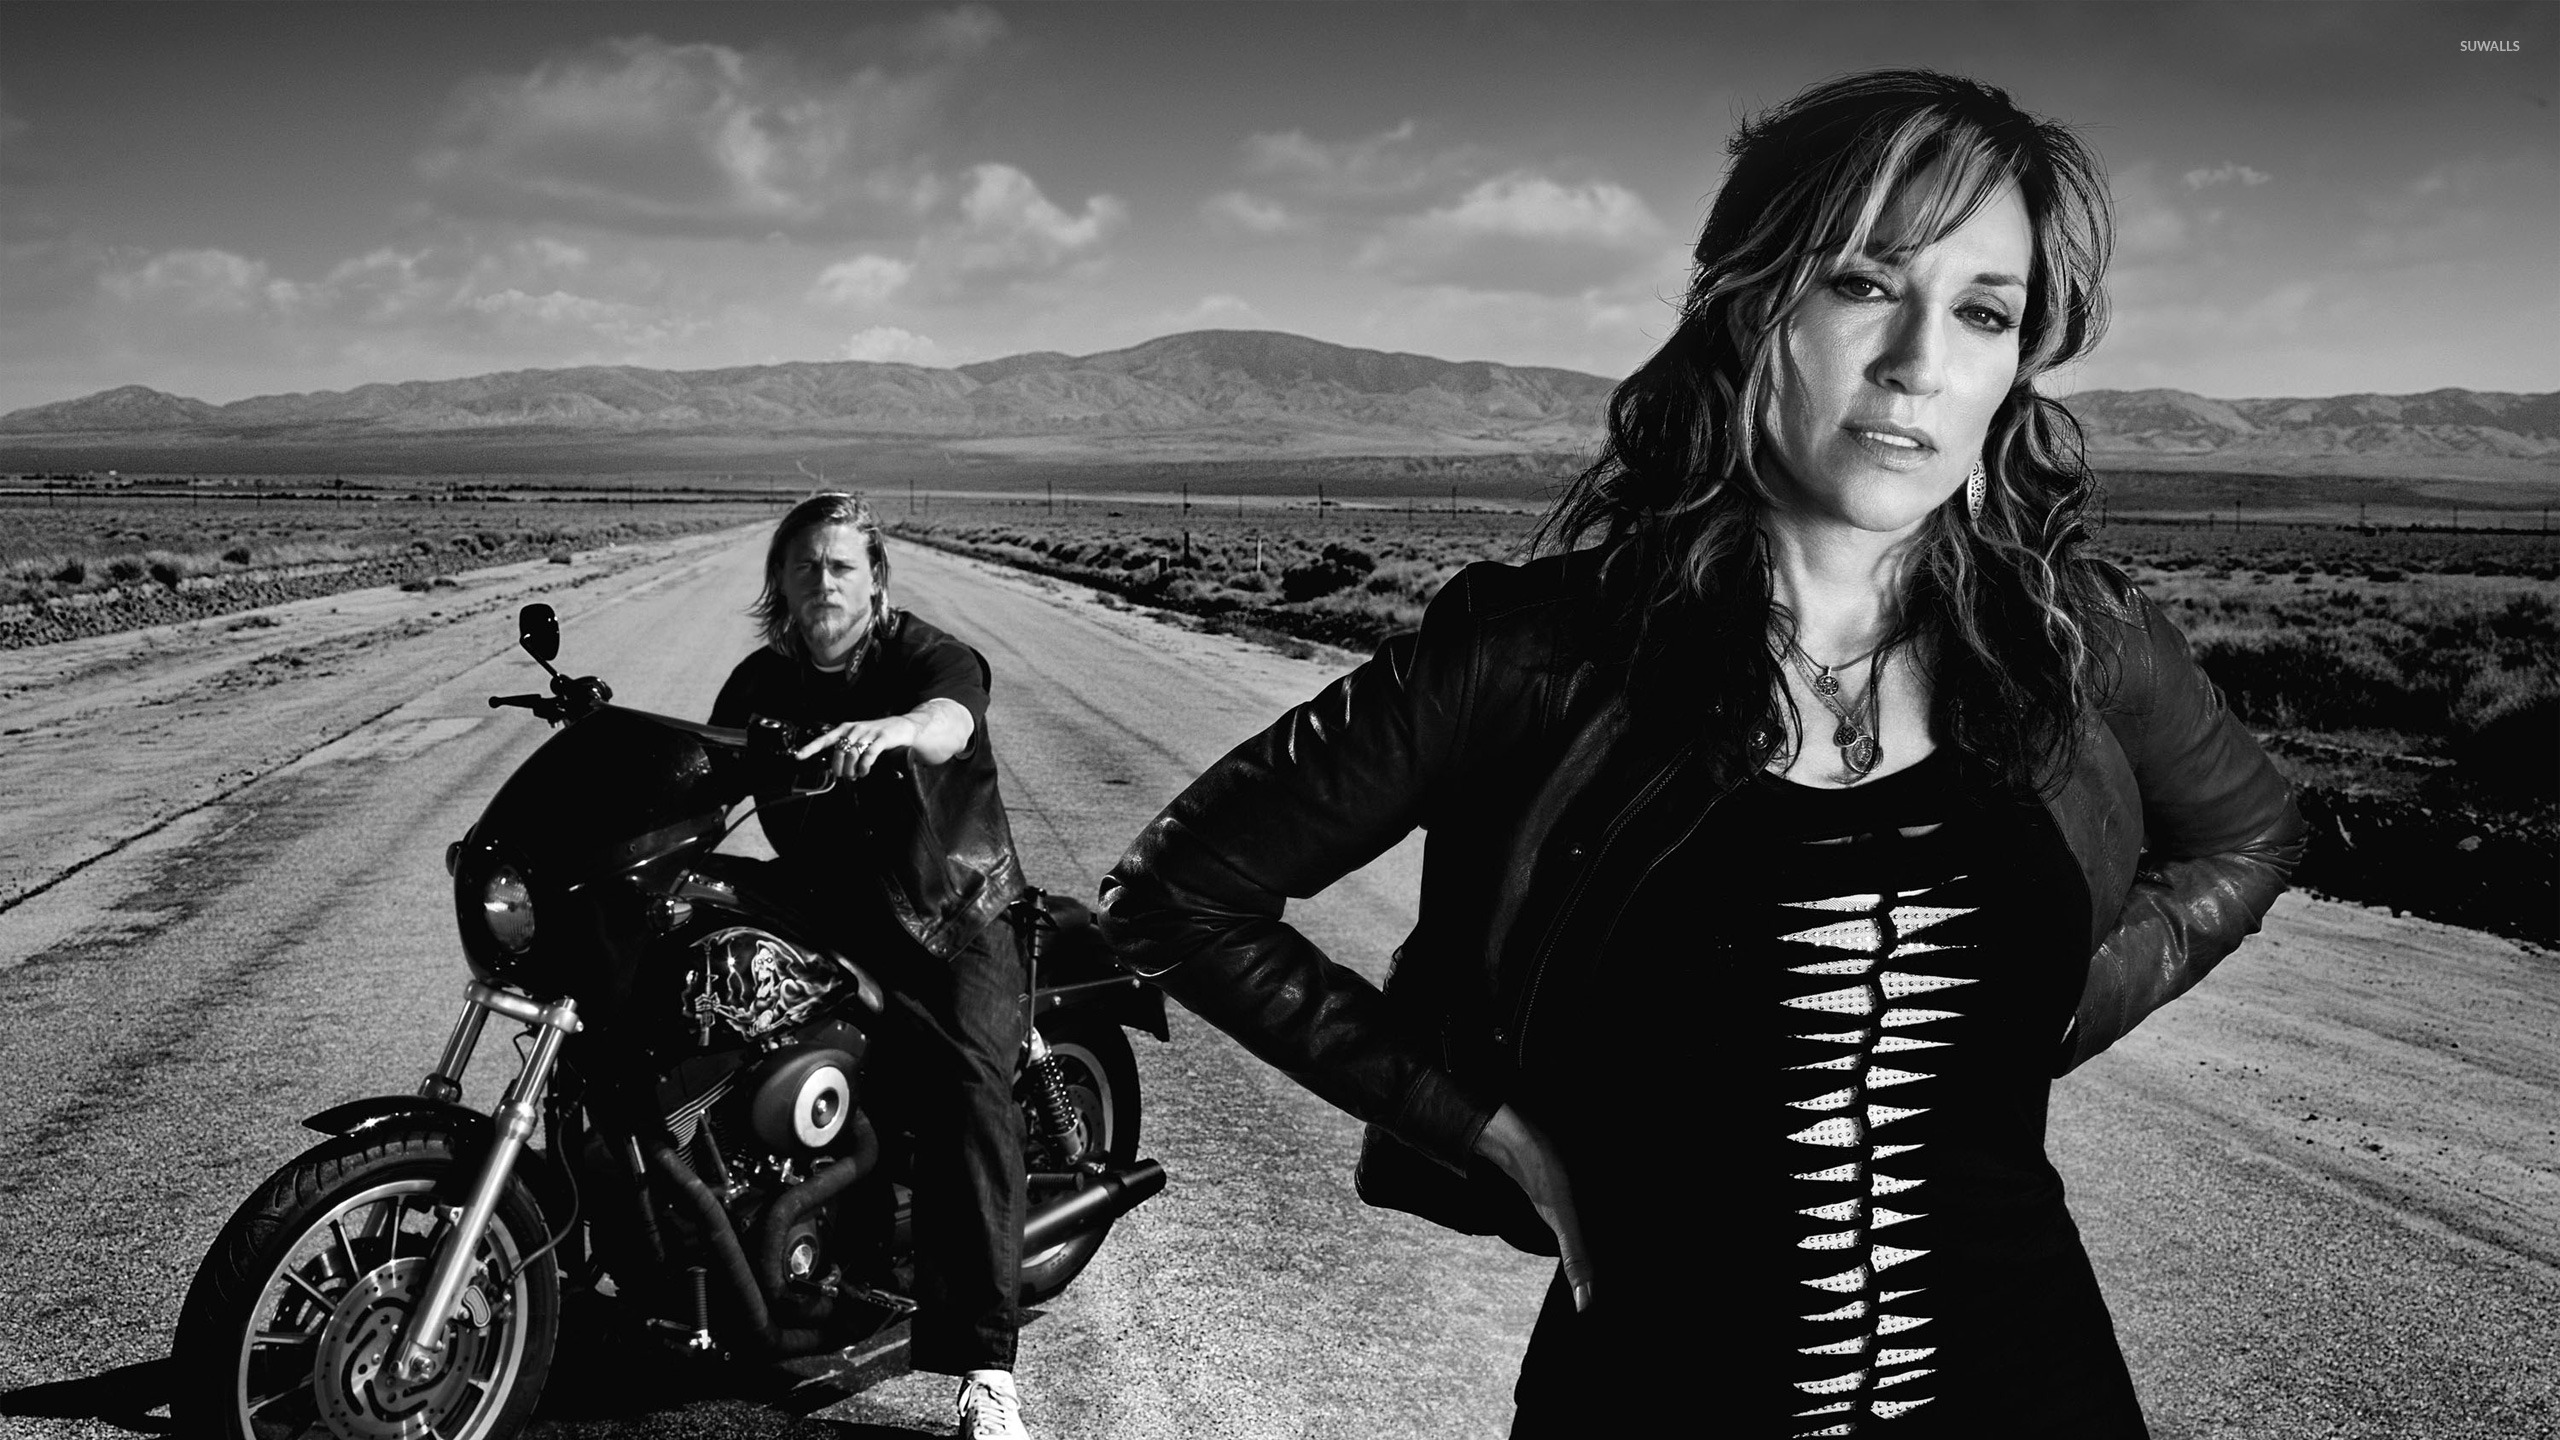 Bikers Quotes Wallpapers Gemma And Jax Sons Of Anarchy Wallpaper Tv Show